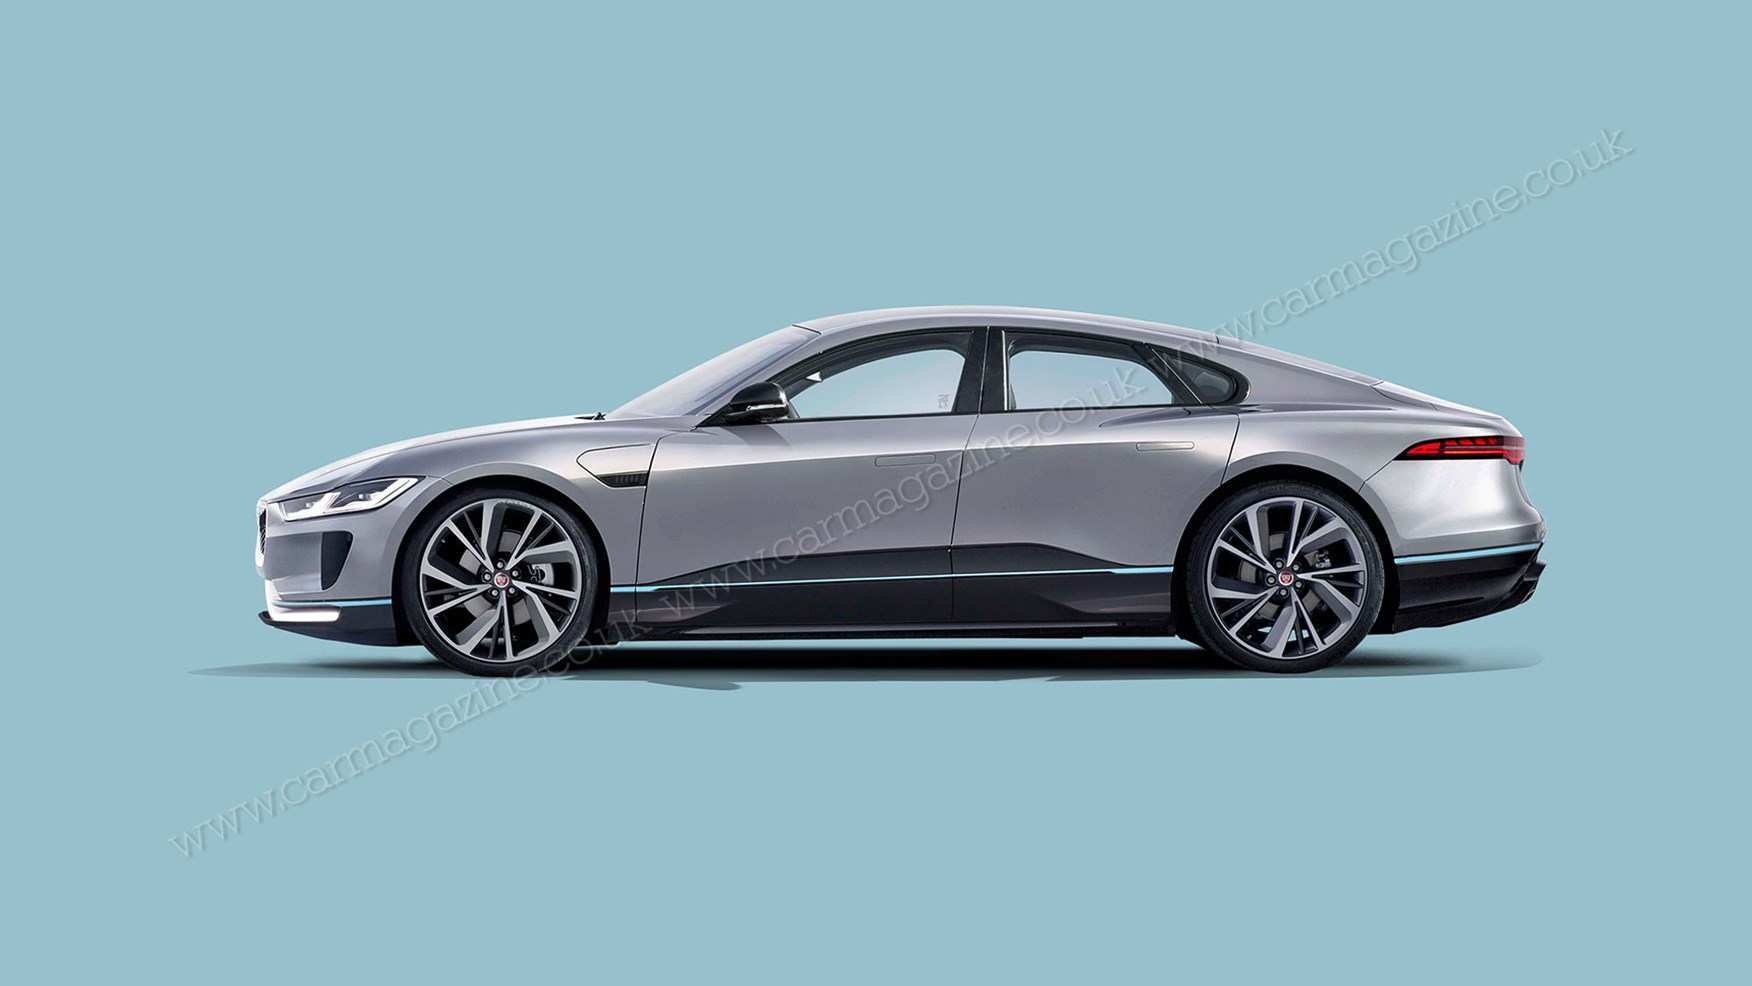 67 A Jaguar Electric Cars 2020 Research New